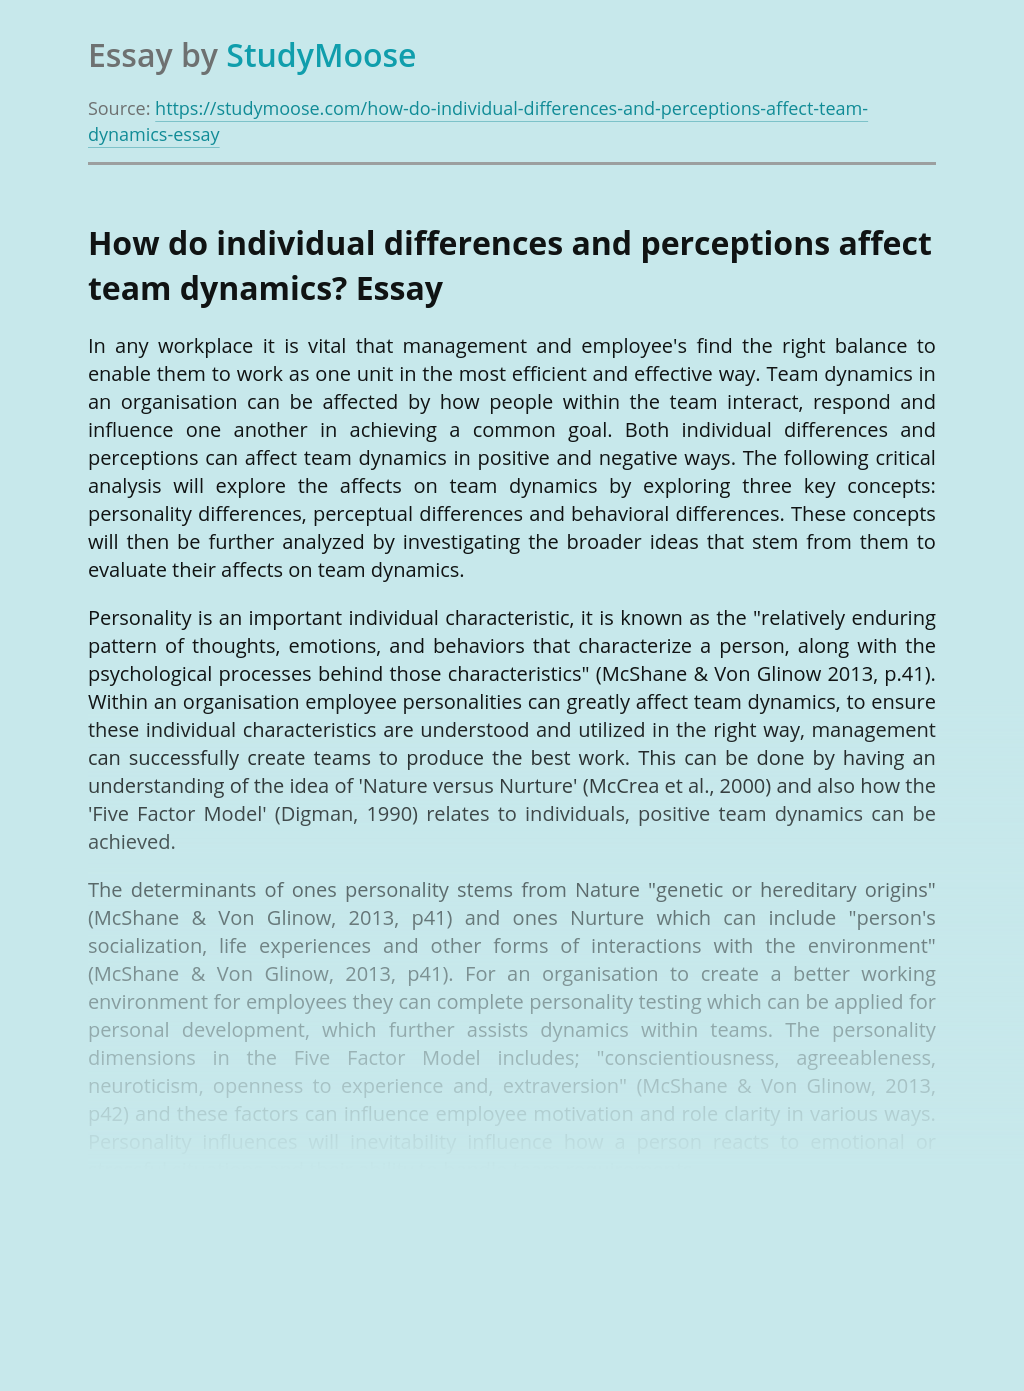 How do individual differences and perceptions affect team dynamics?